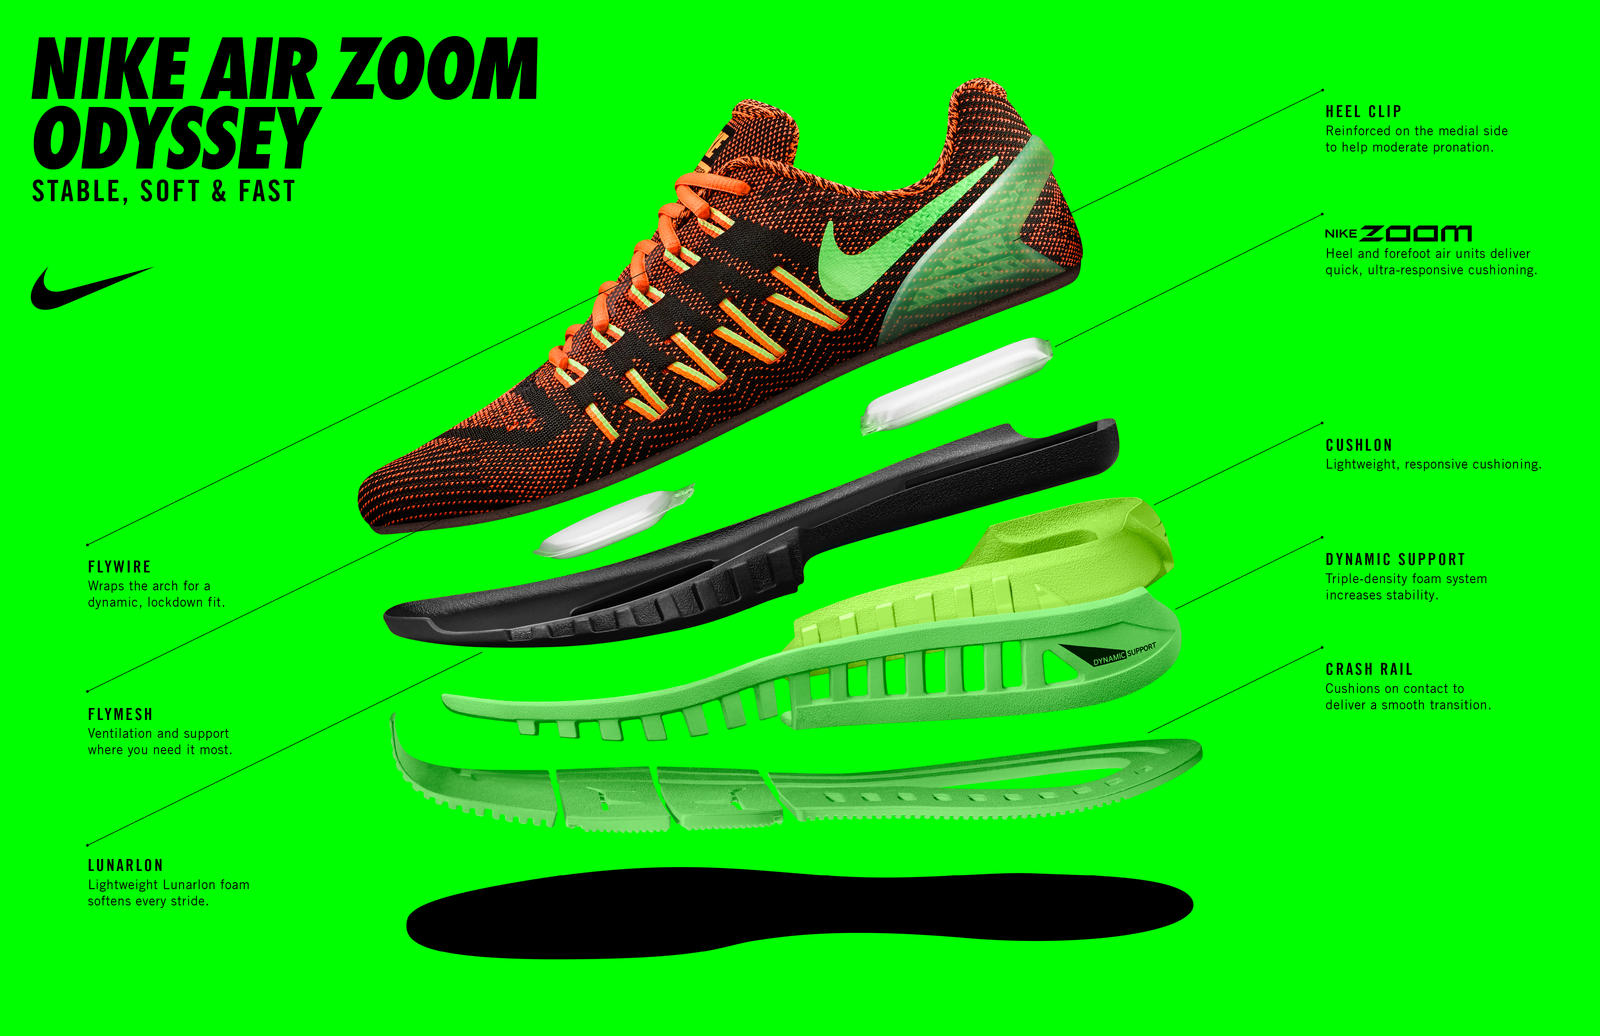 Nike Zoom Dynamic Support Shoes